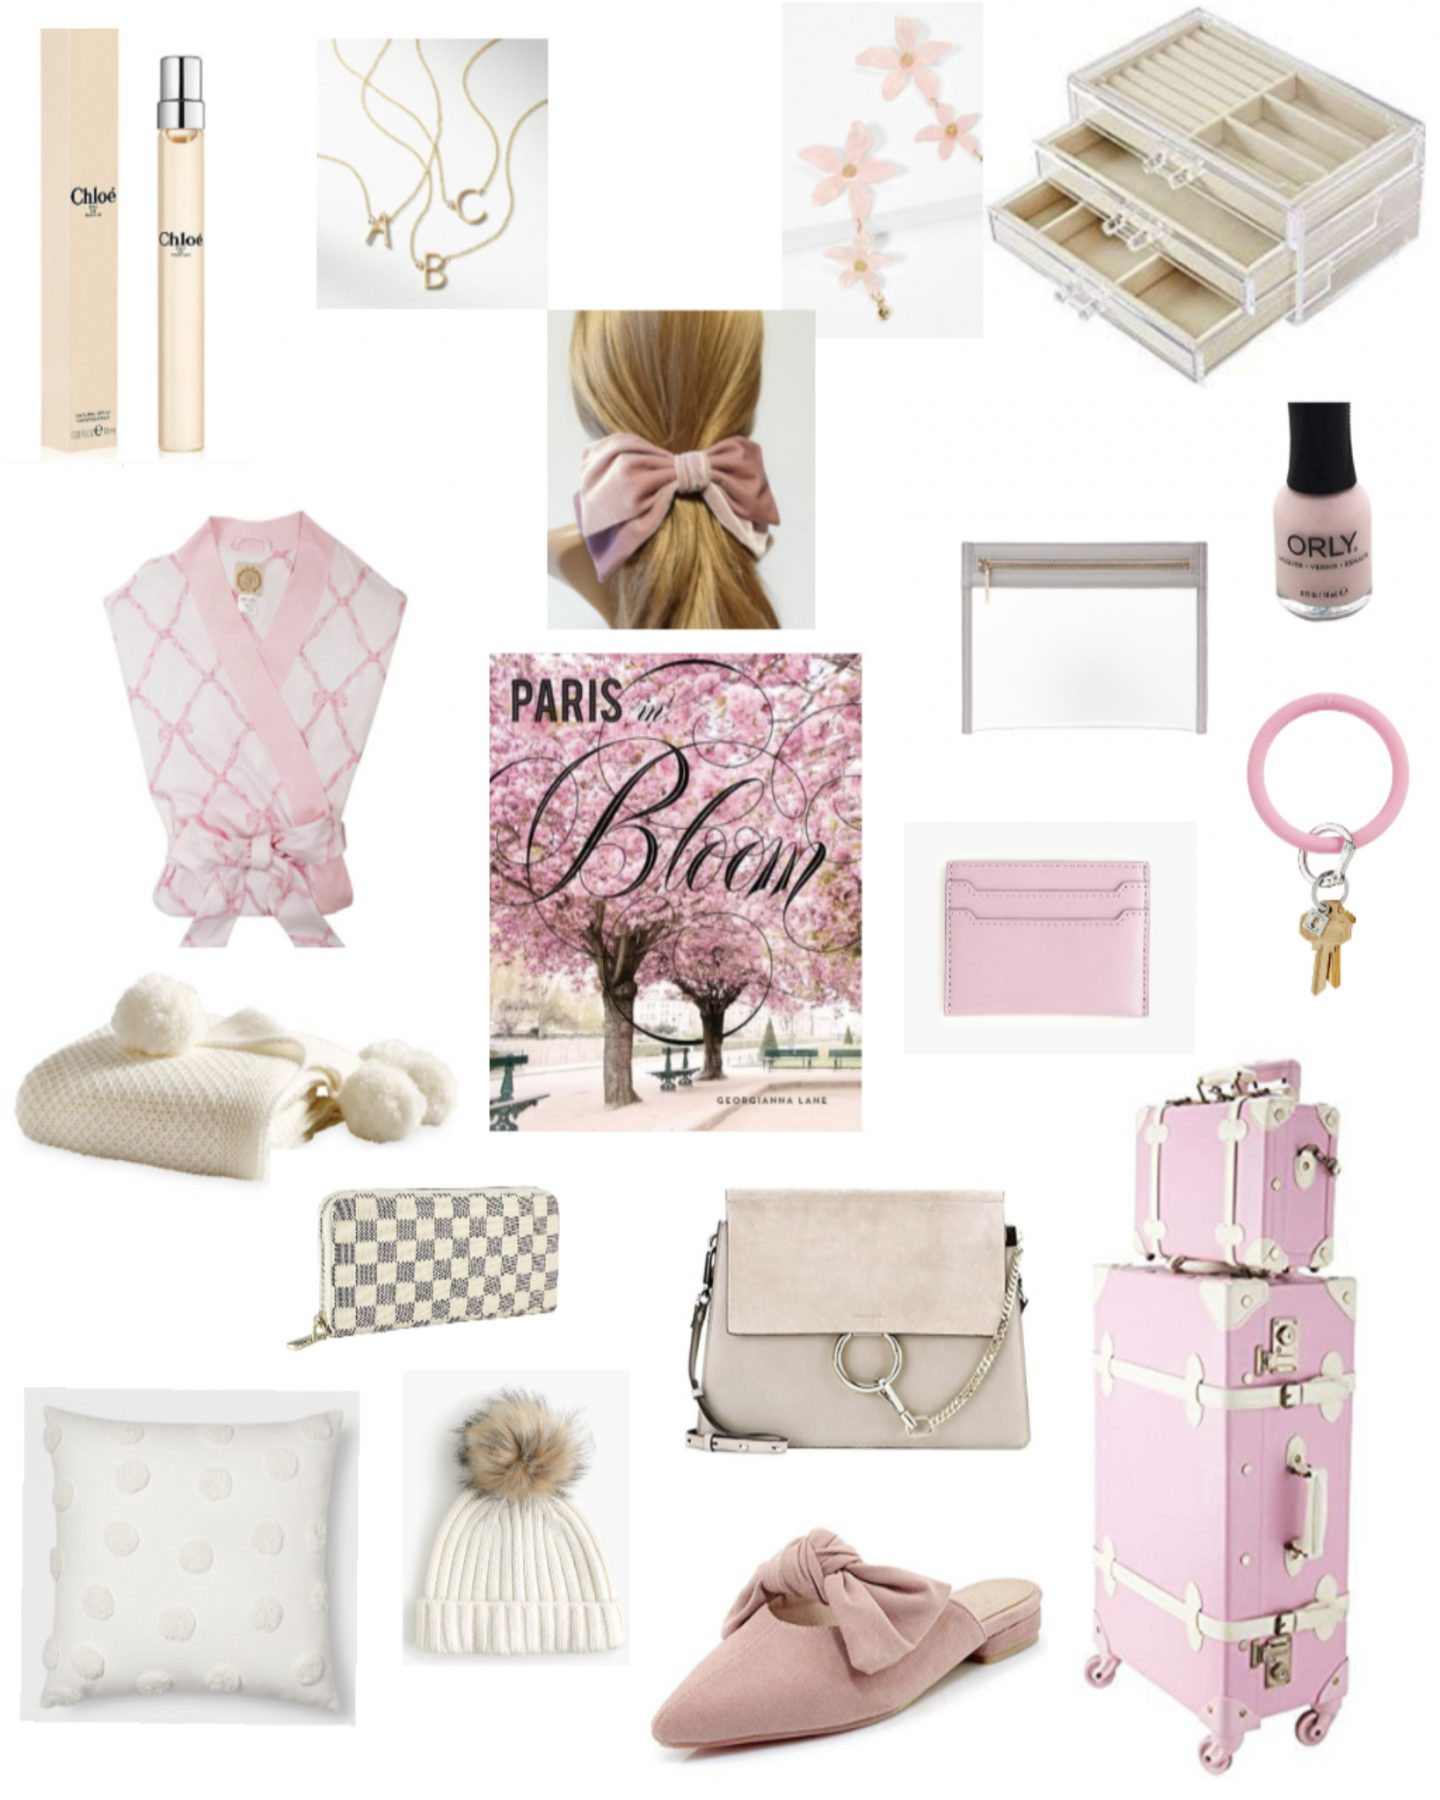 Gift Guide for Her (Or You!)